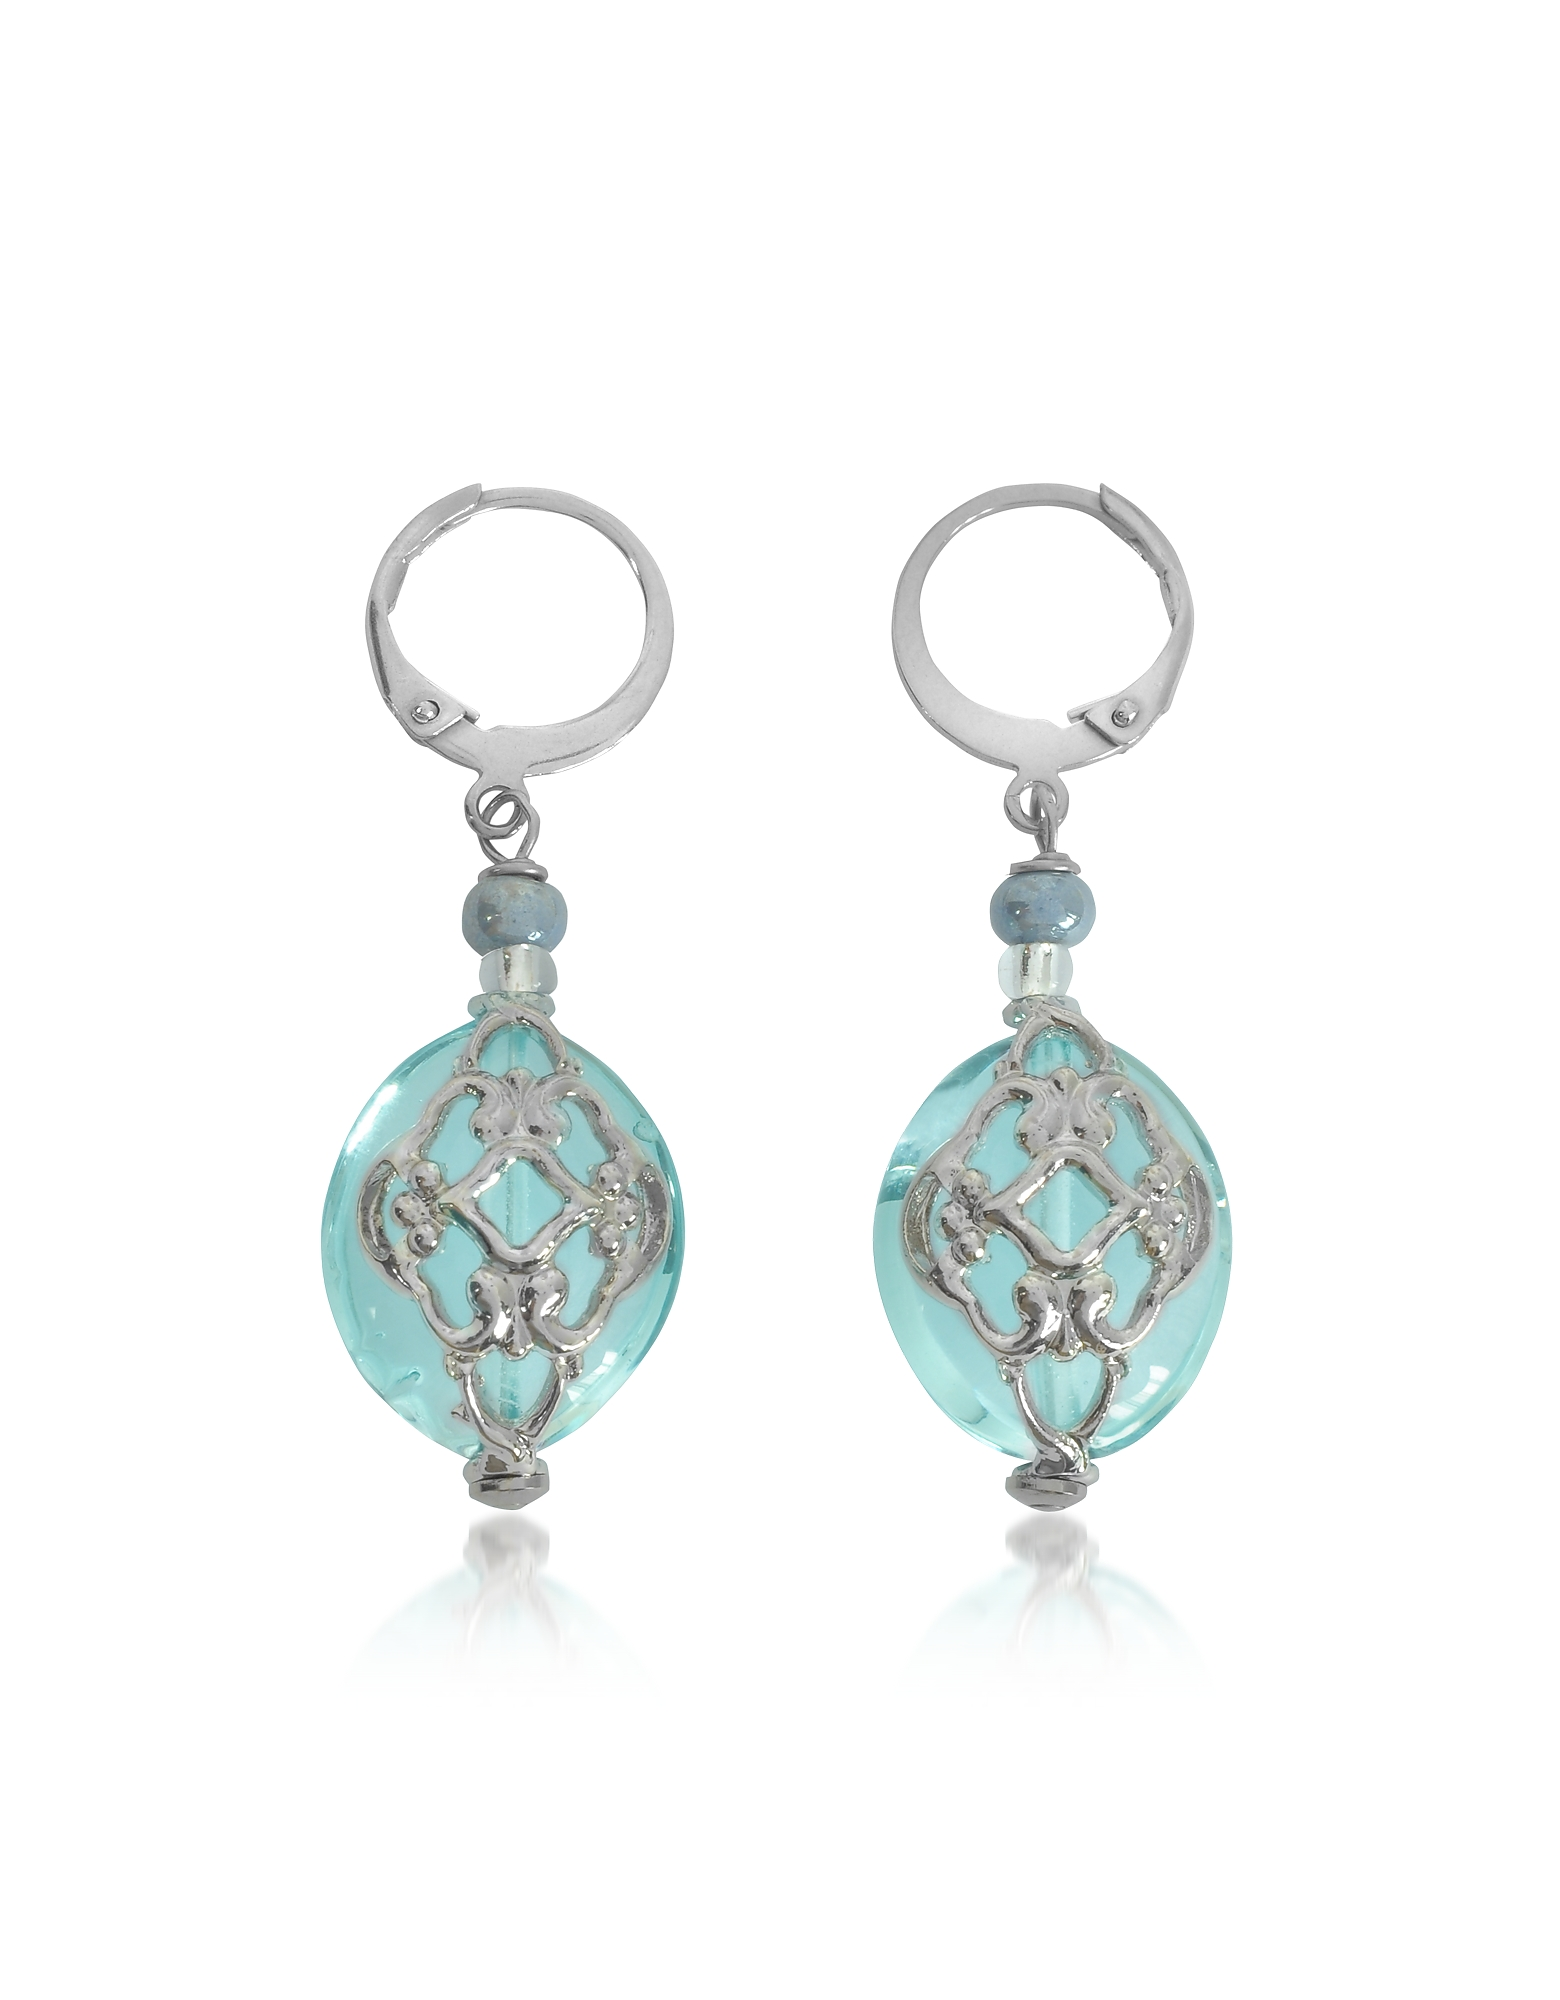 Antica Murrina Earrings, Florinda Light Blue Murano Glass Earrings